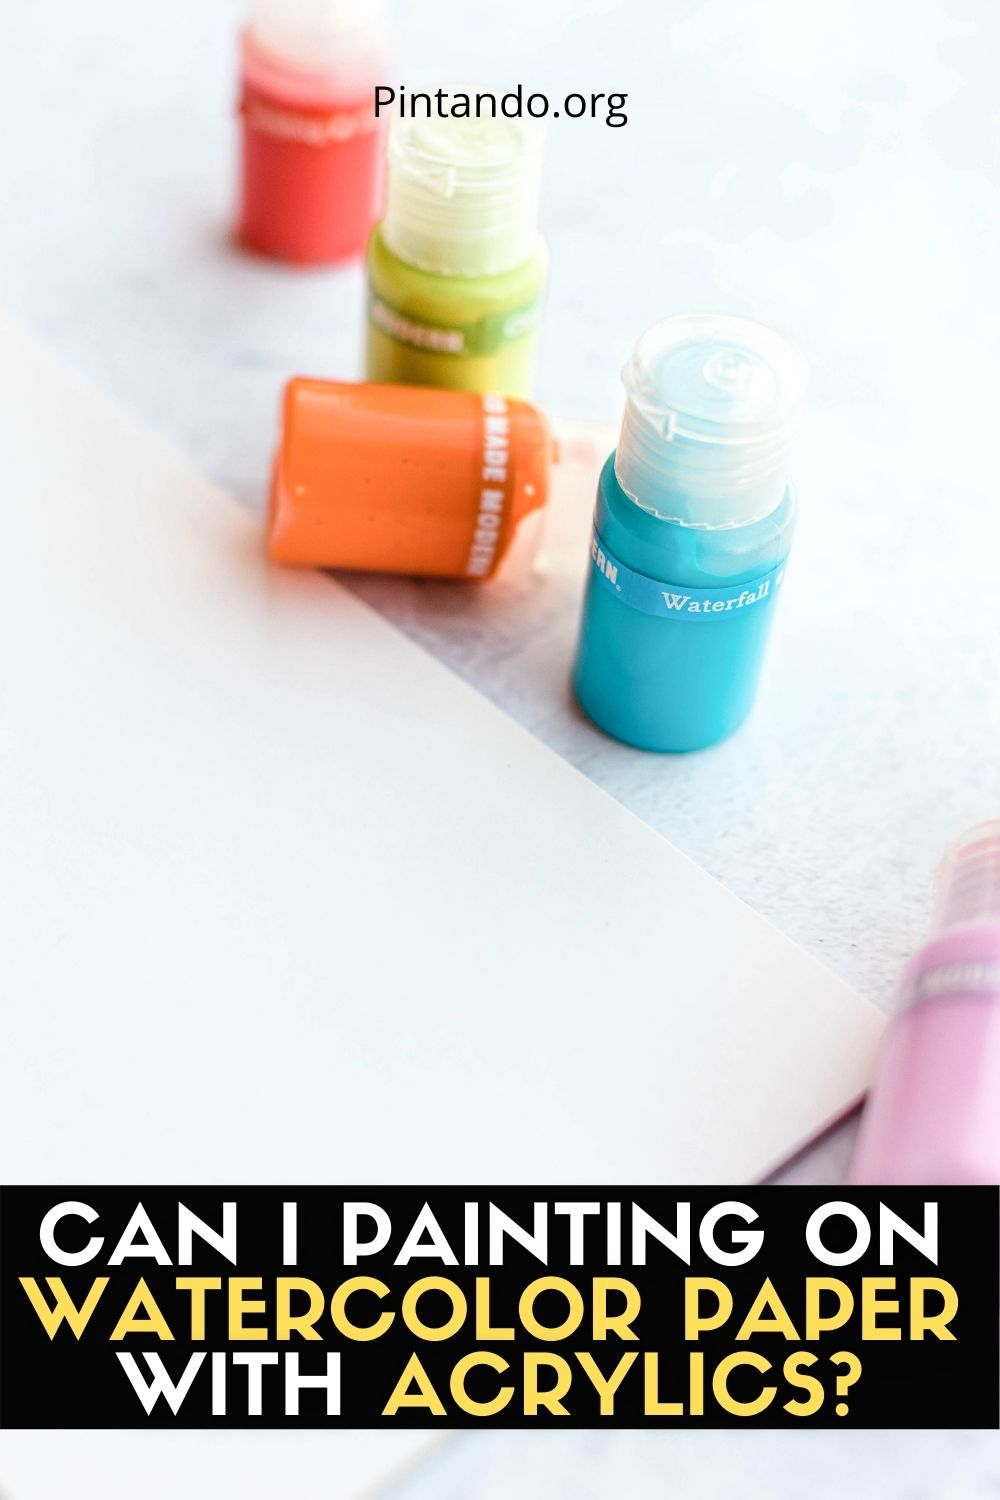 CAN I PAINTING ON WATERCOLOR PAPER WITH ACRYLICS